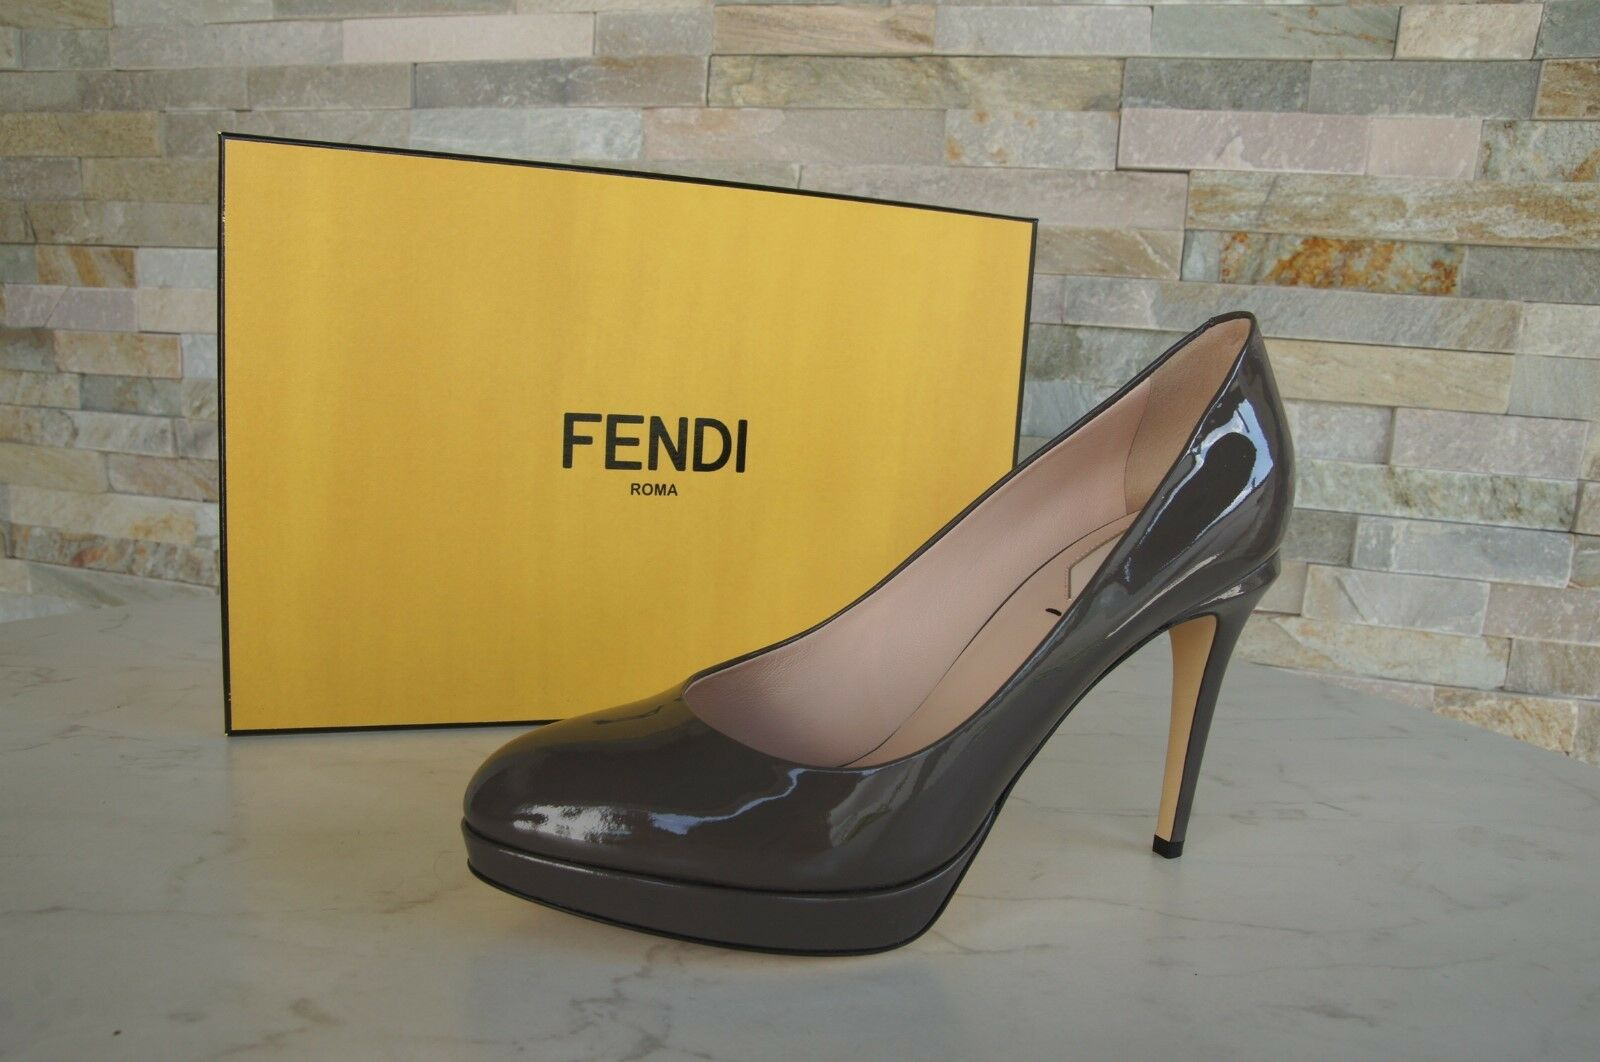 Luxury FENDI size 36 Pumps Platform High Heels shoes shoes Carbon New formerly